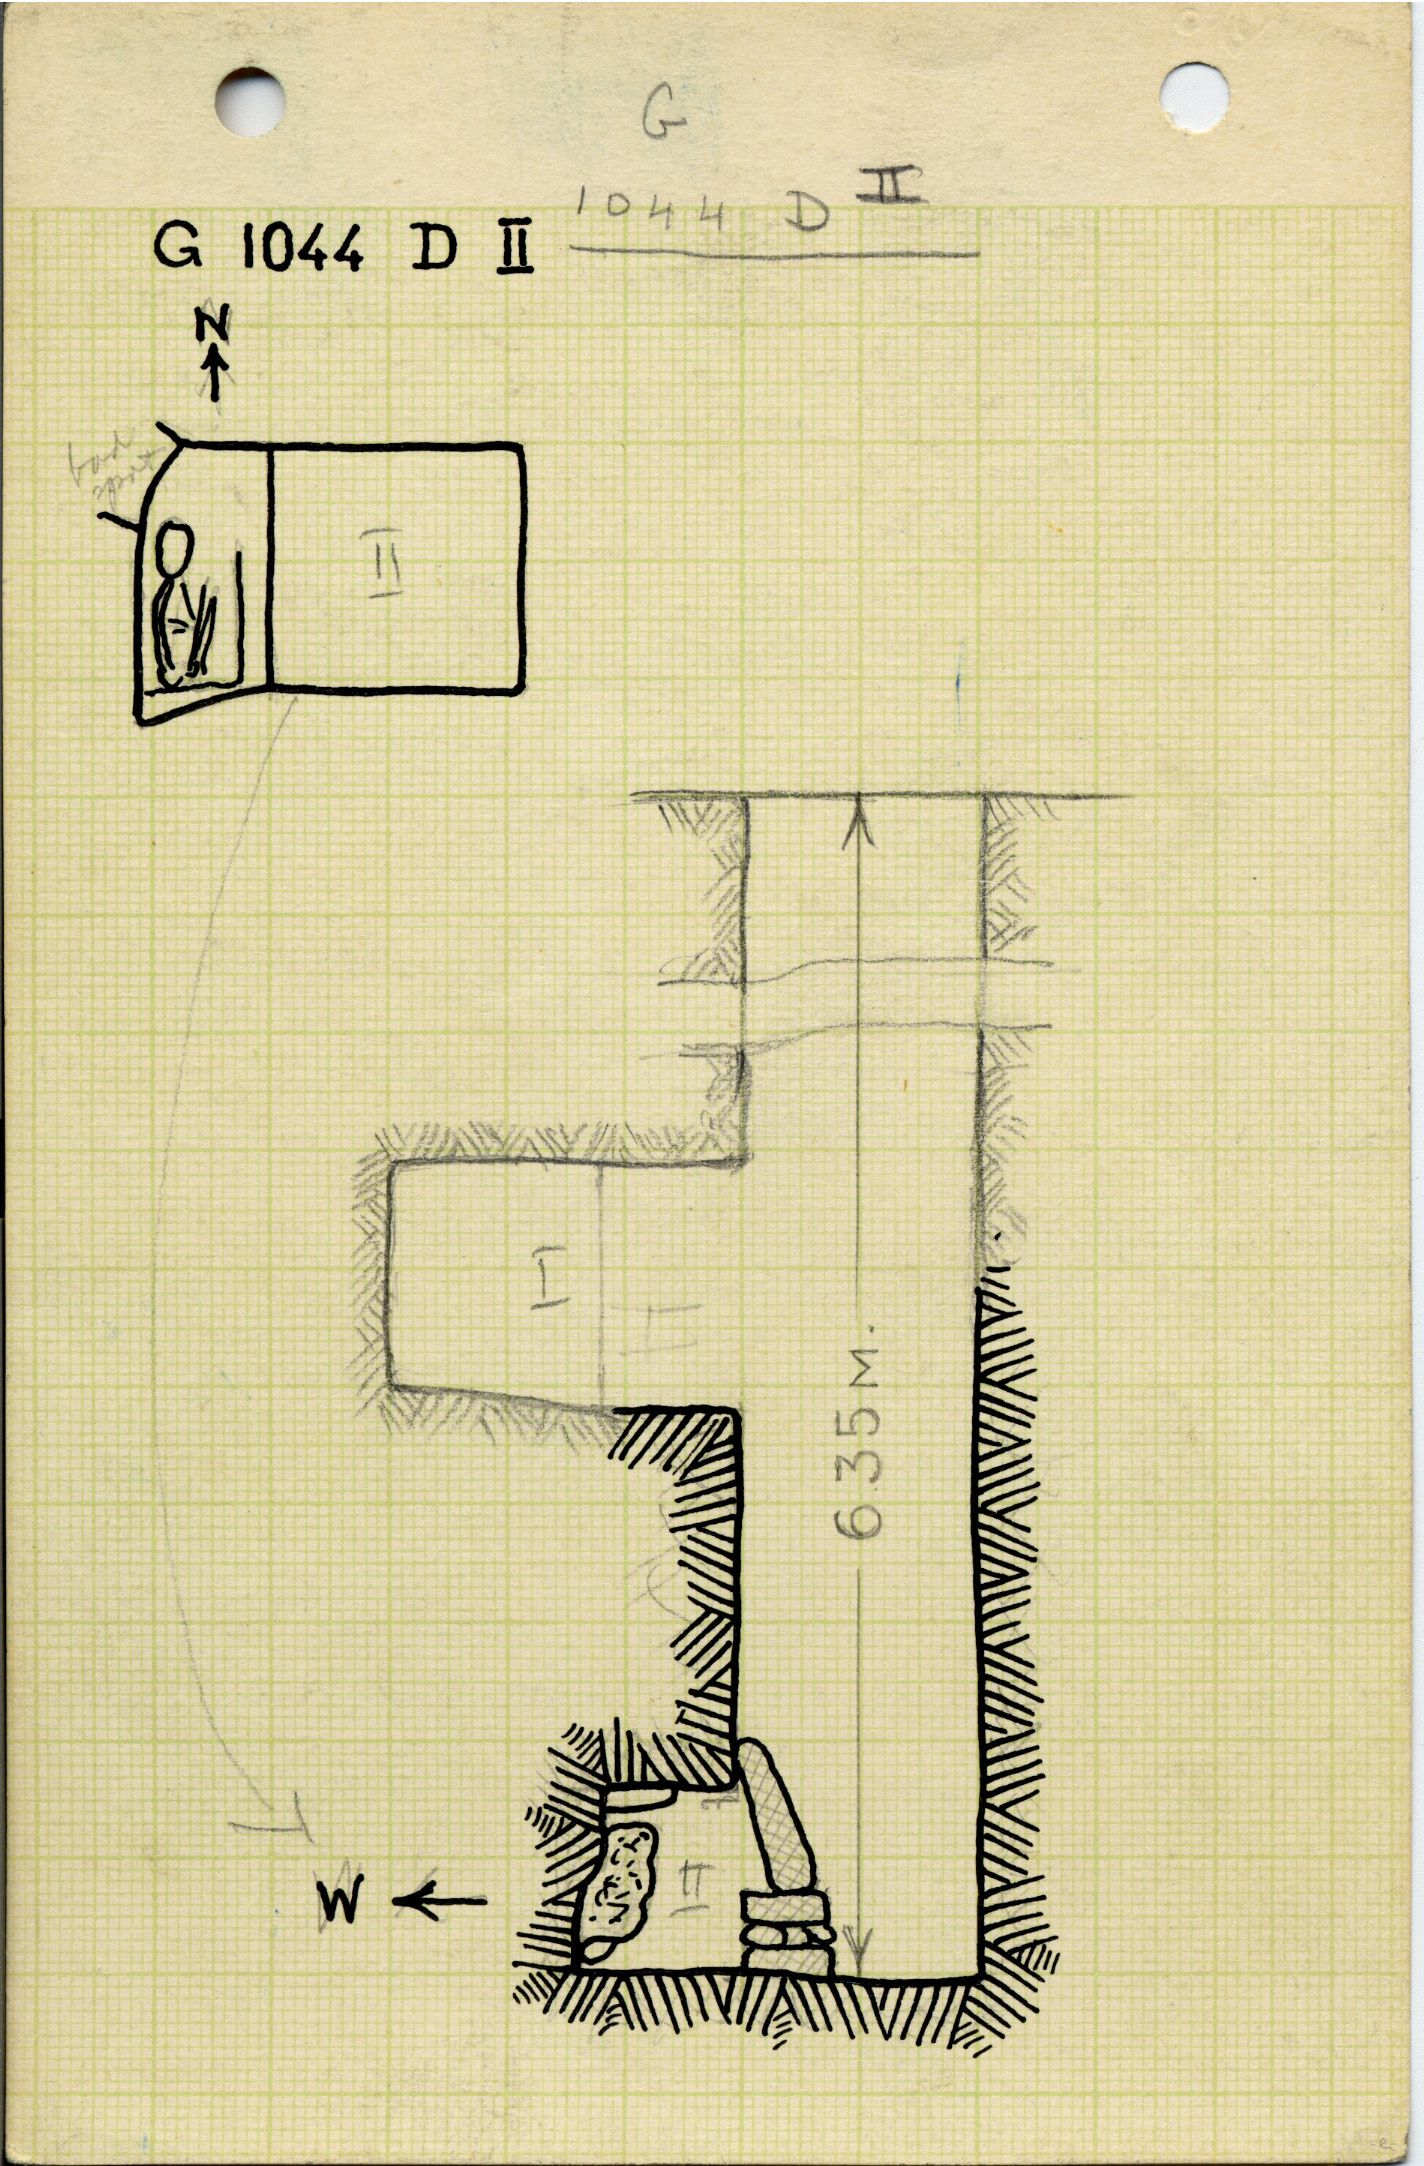 Maps and plans: G 1044, Shaft D (II)